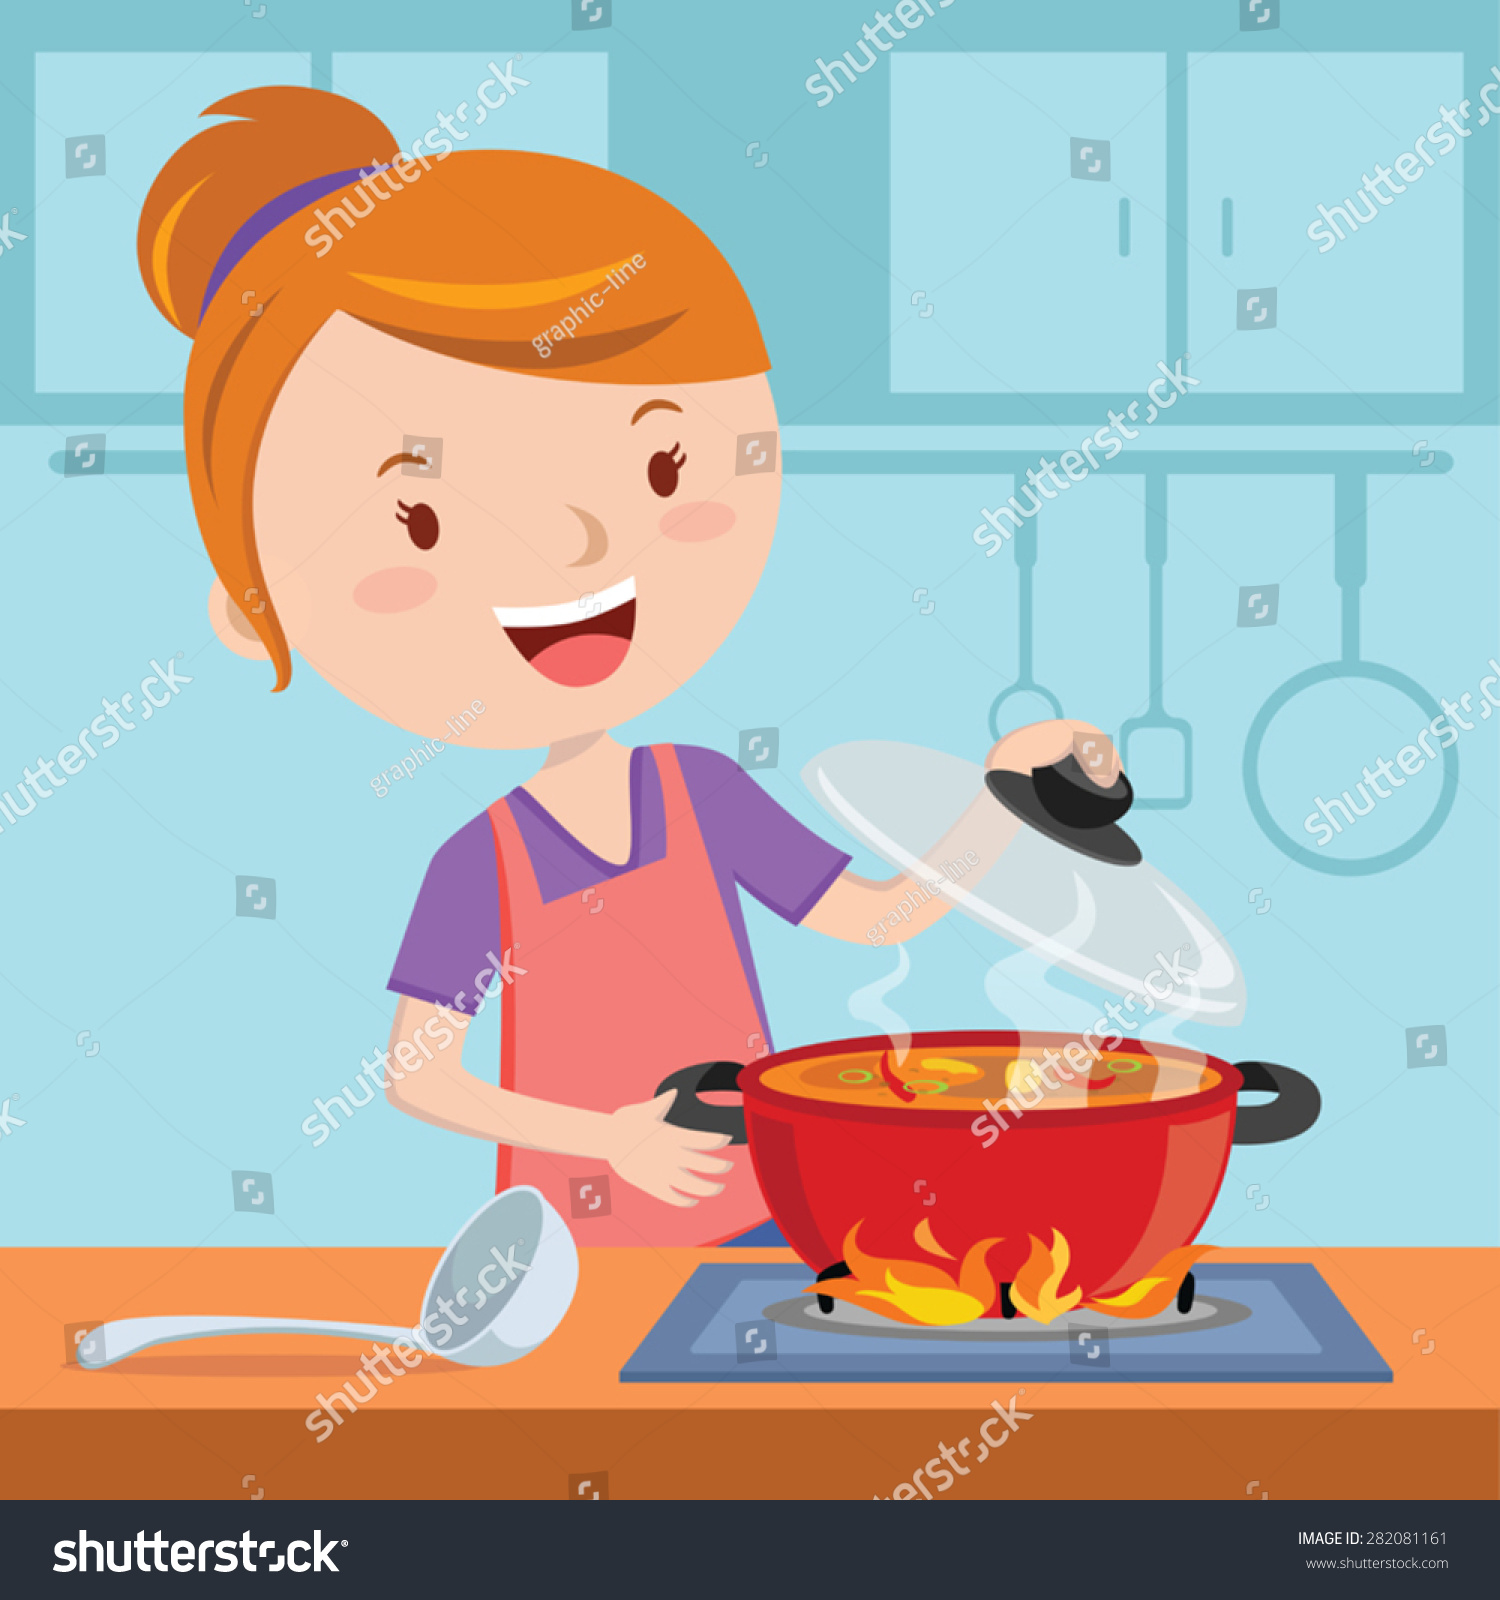 Kitchen utensil clip art - Mother Cooking Vector Illustration Of A Woman Cooking In